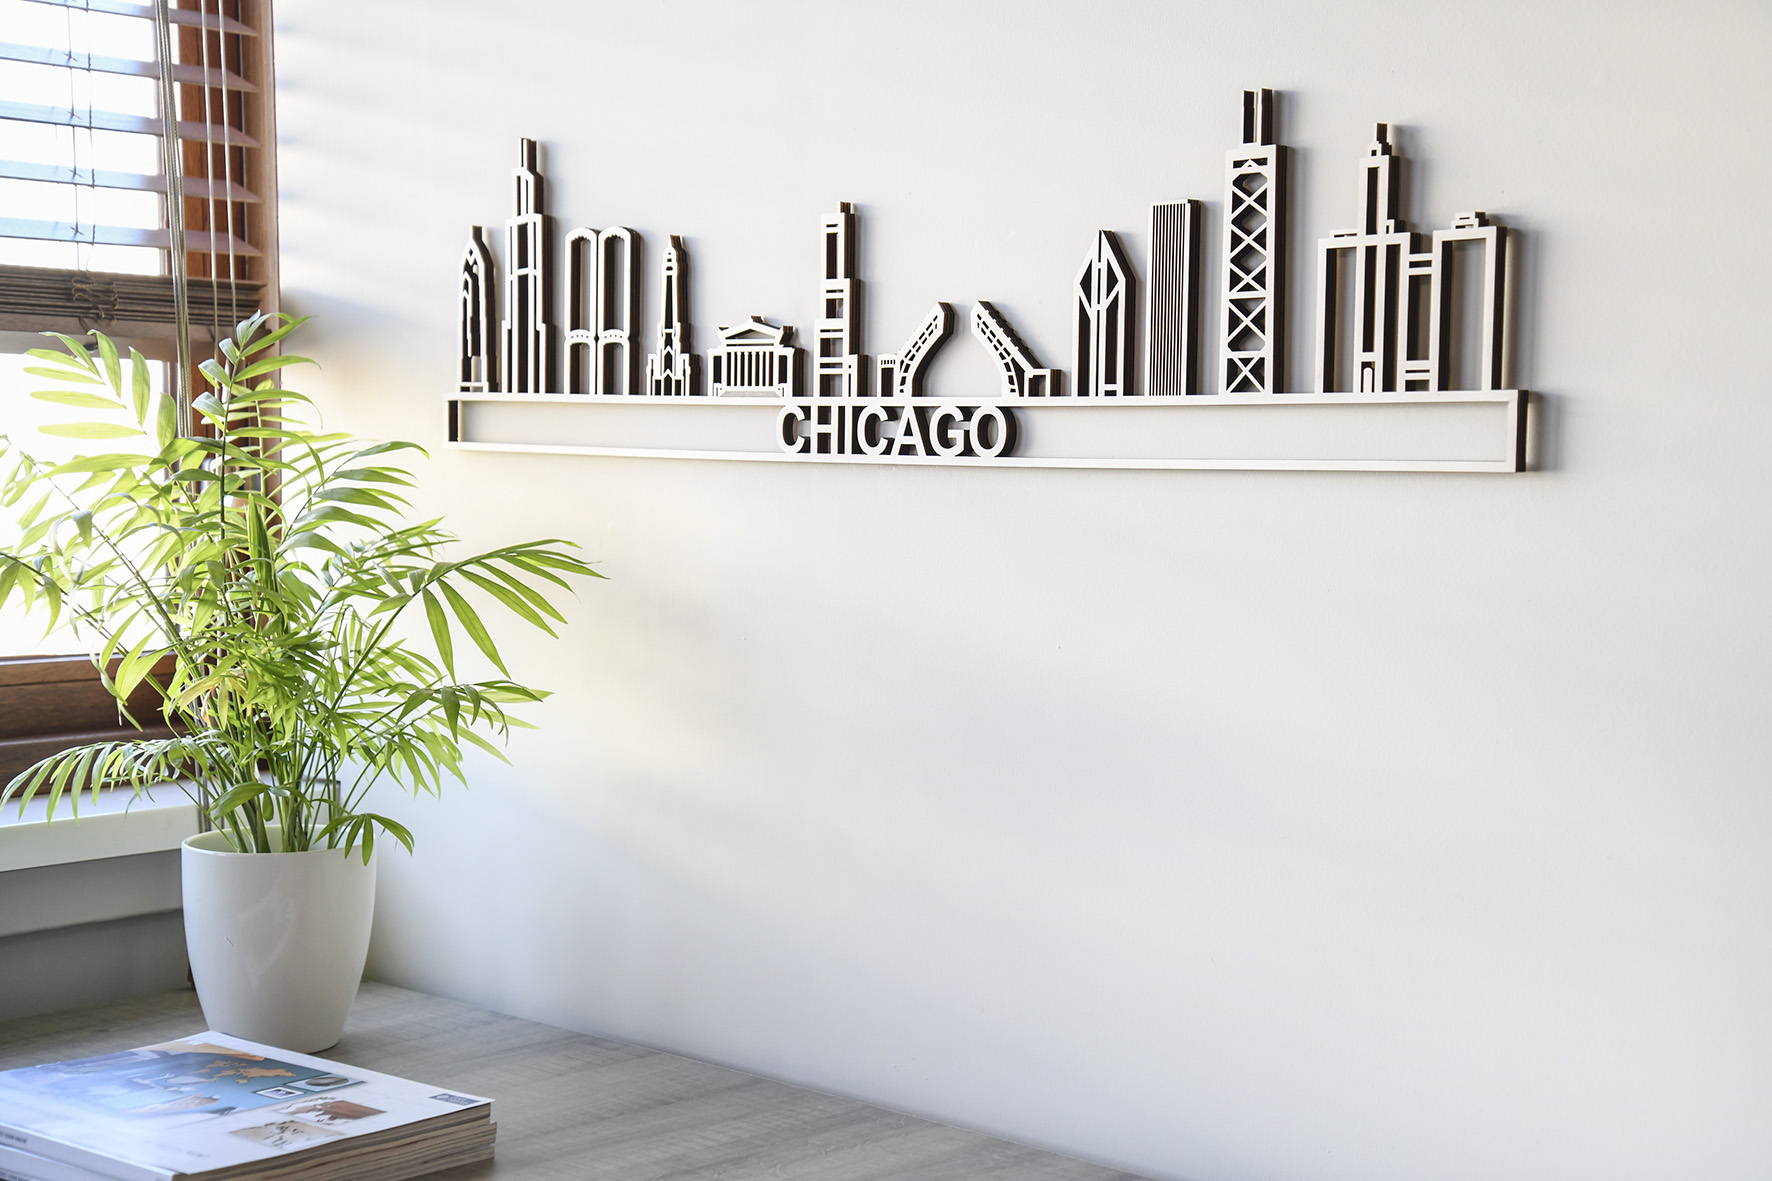 Houten skyline Chicago populier